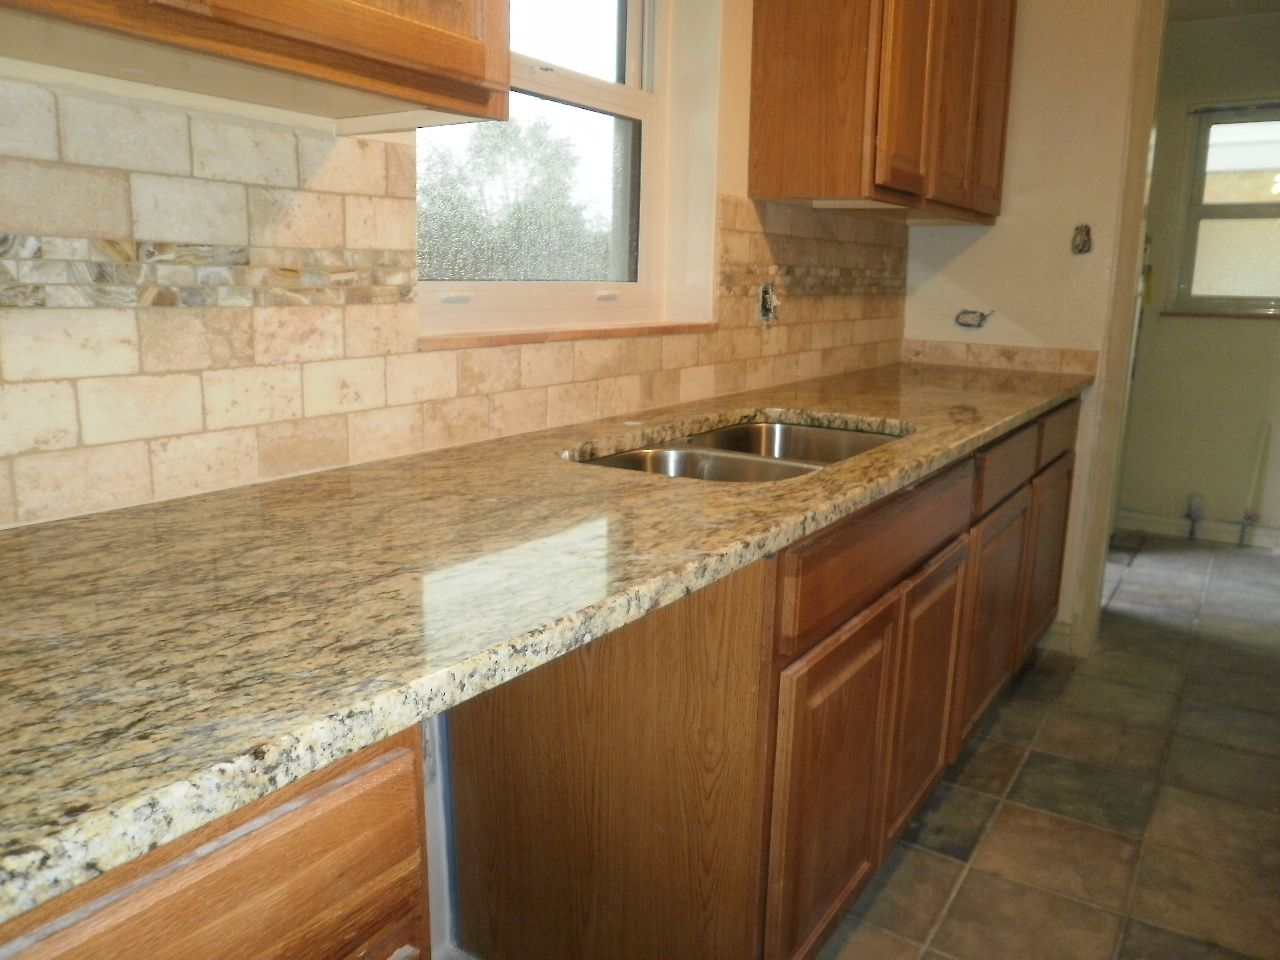 lightweight kitchen cabinets kate spade what type of backsplash to use with st cecilia countertop